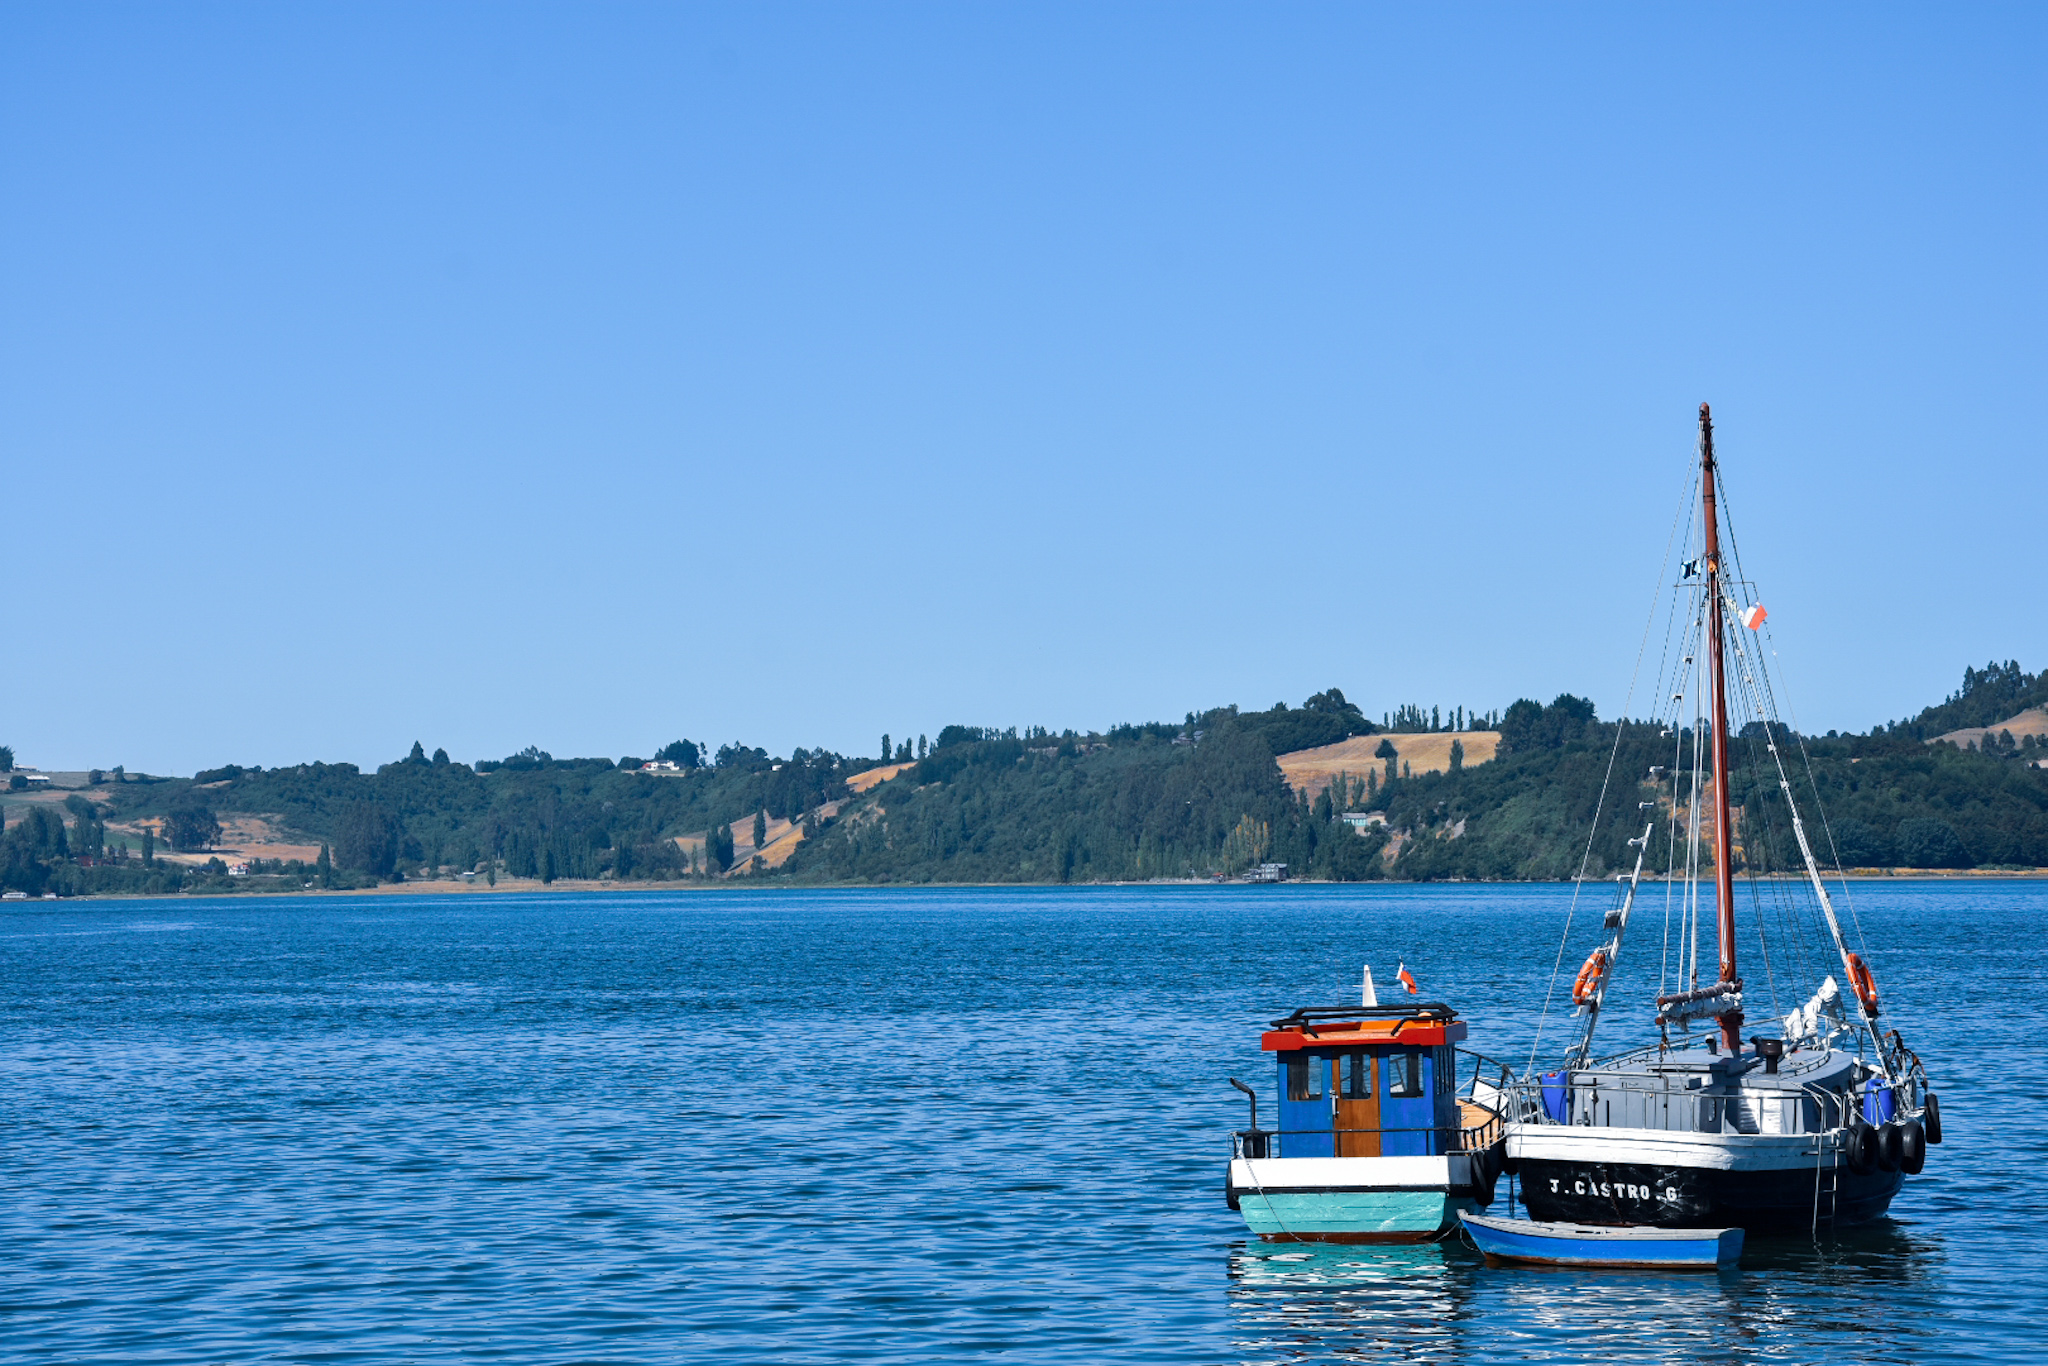 Castro waterfront